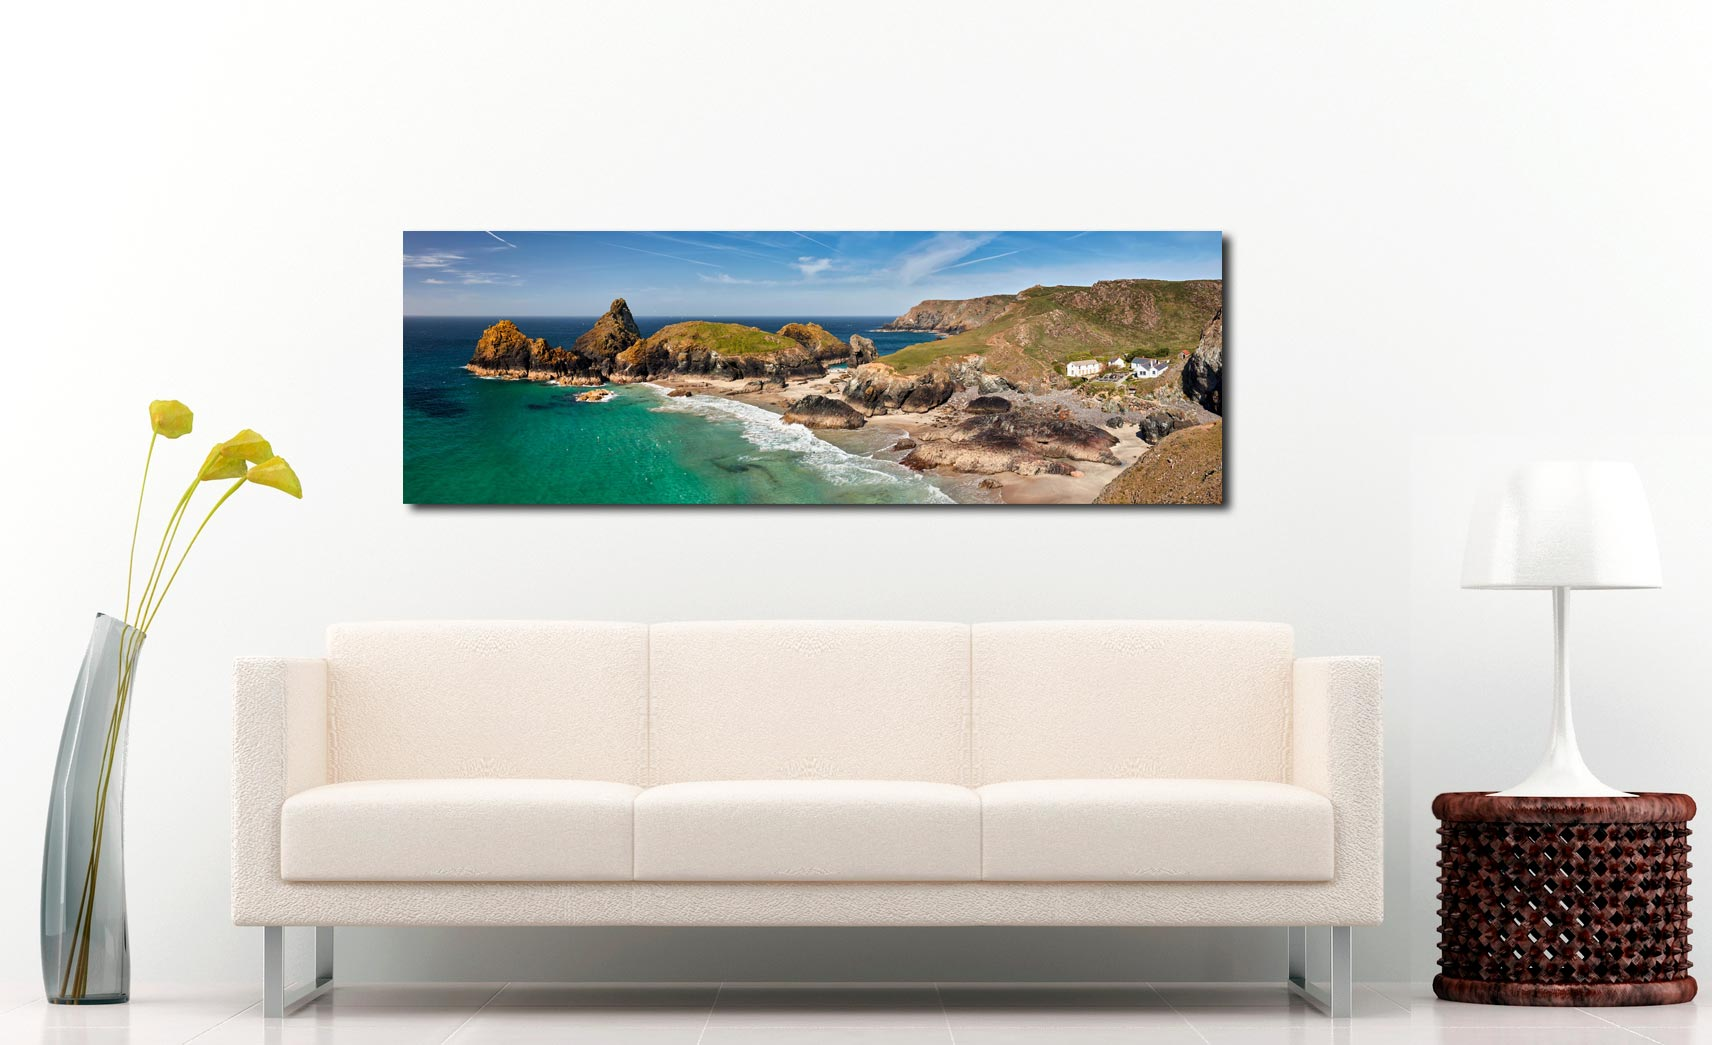 Kynance Cove and cafe on the Lizard on Cornwall - Print Aluminium Backing With Acrylic Glazing on Wall